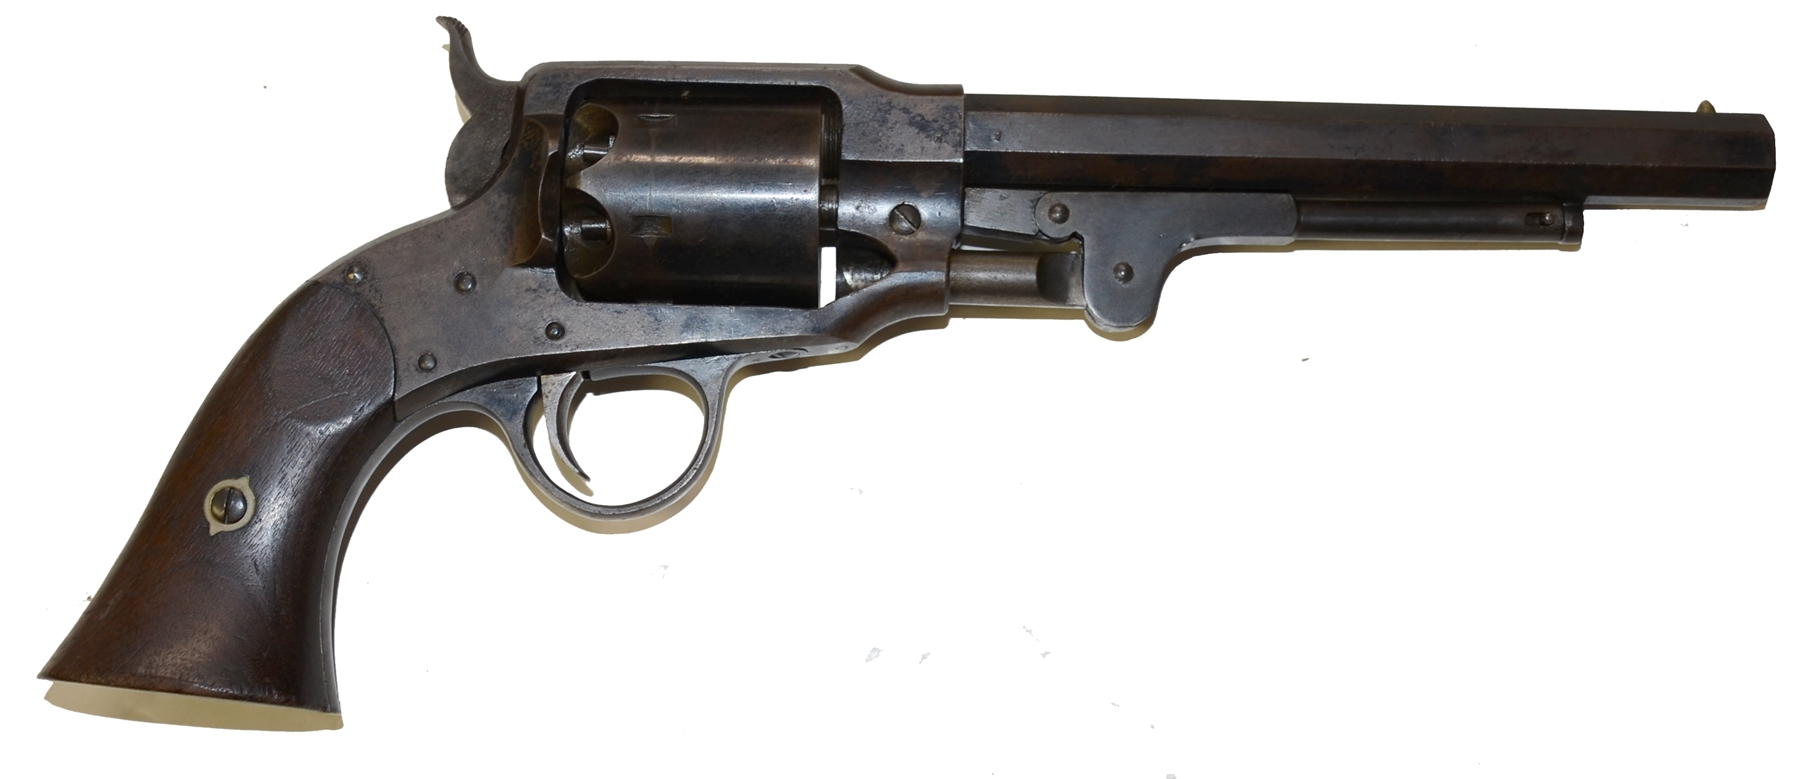 MARTIALLY MARKED ROGERS & SPENCER REVOLVER